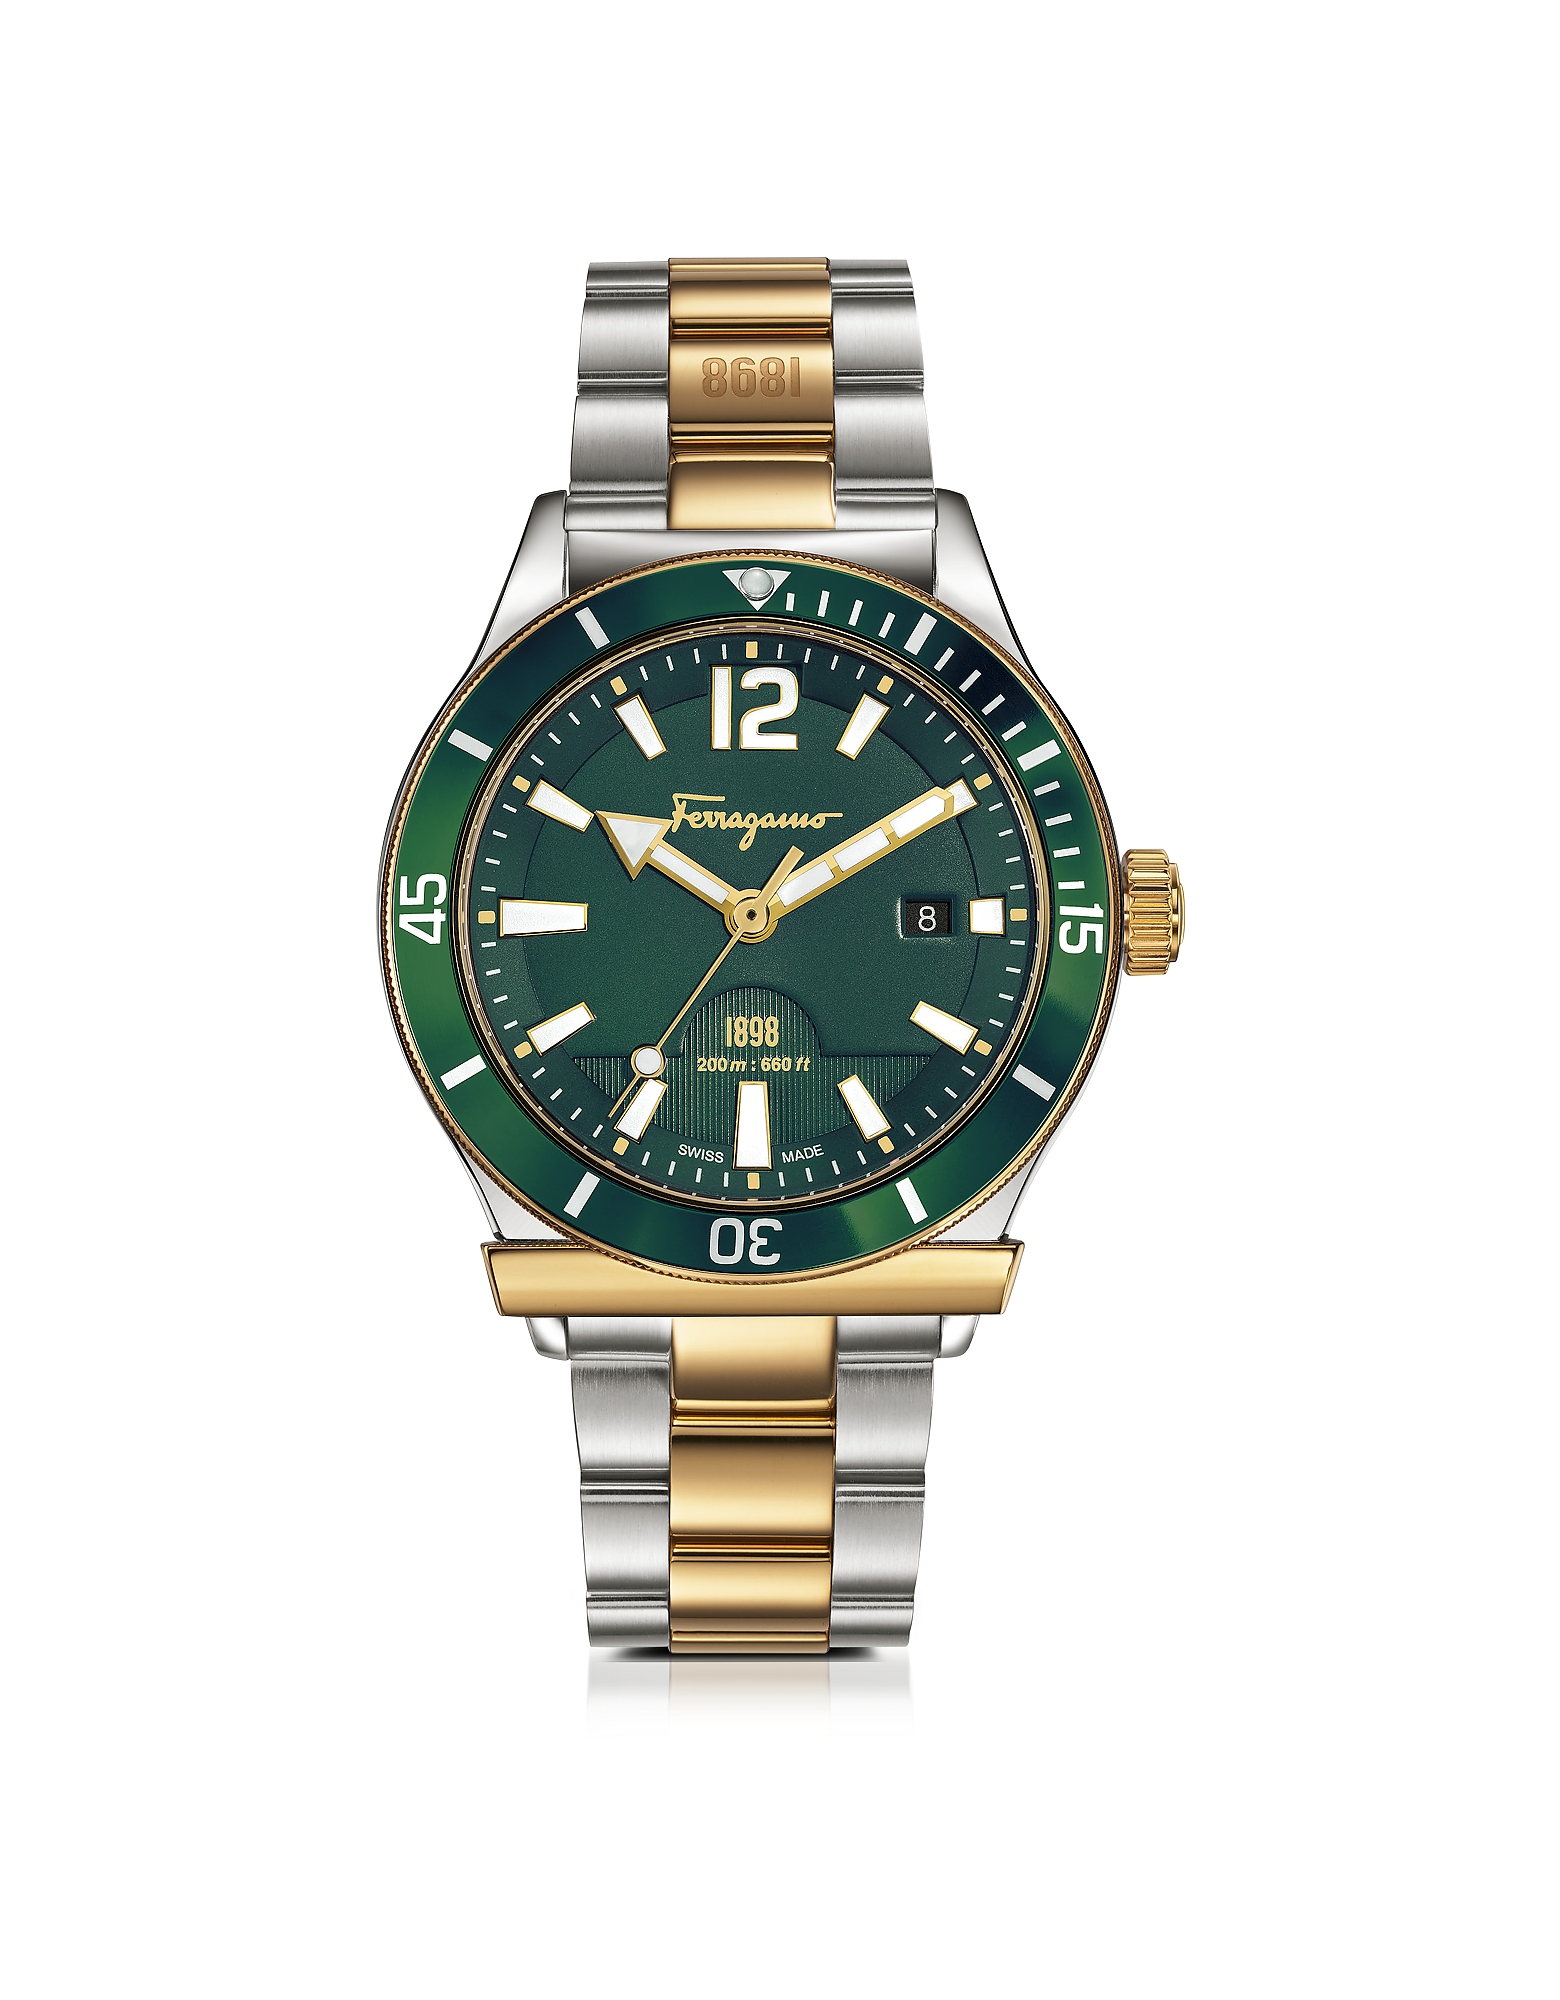 Ferragamo 1898 Sport Gold IP and Stainless Steel Men's Bracelet Watch w/Green Aluminum Rotating Bezel. Ferragamo 1898 Sport Gold IP a